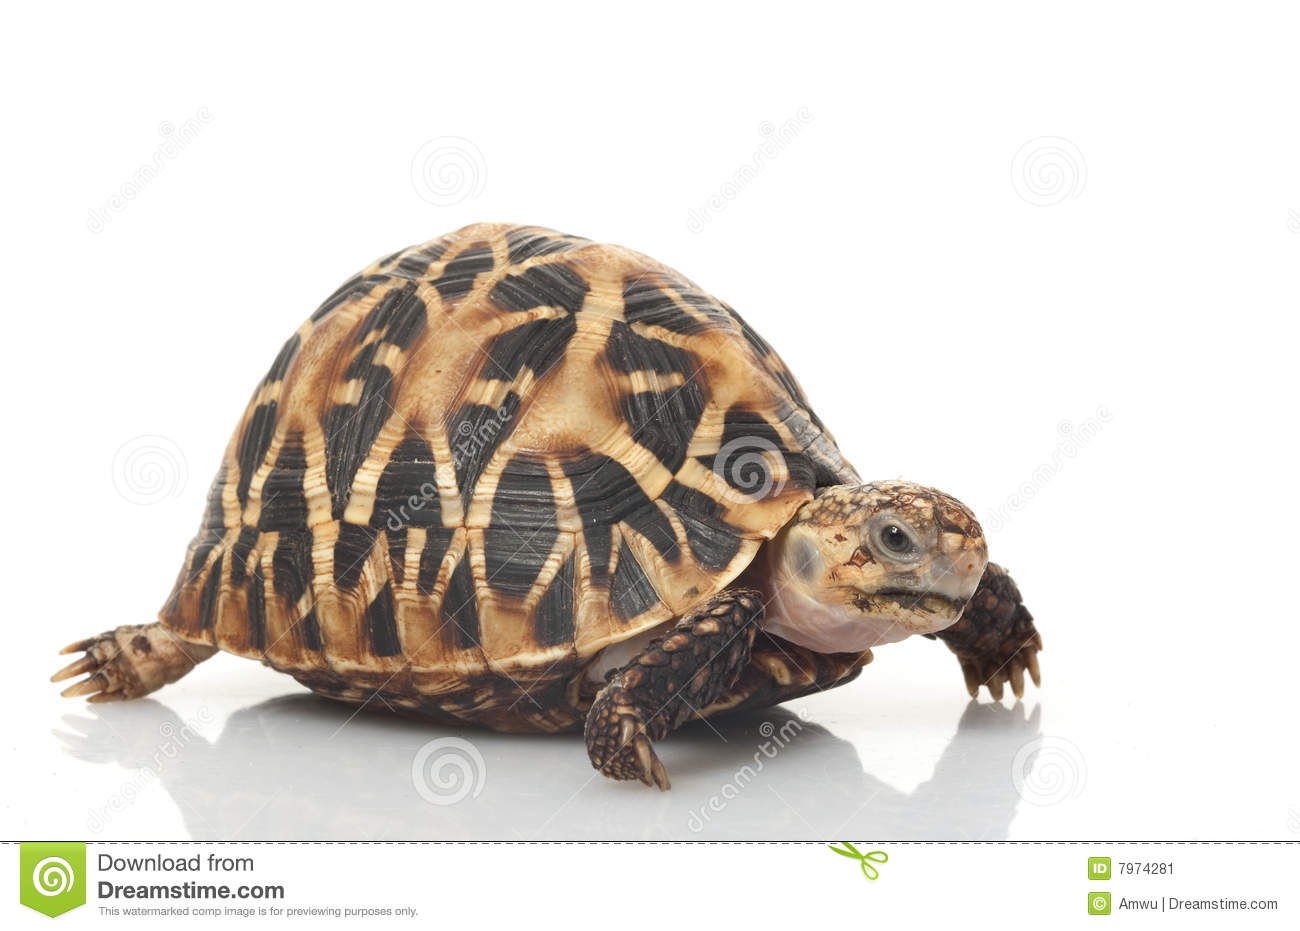 Indian Star Tortoise clipart #19, Download drawings